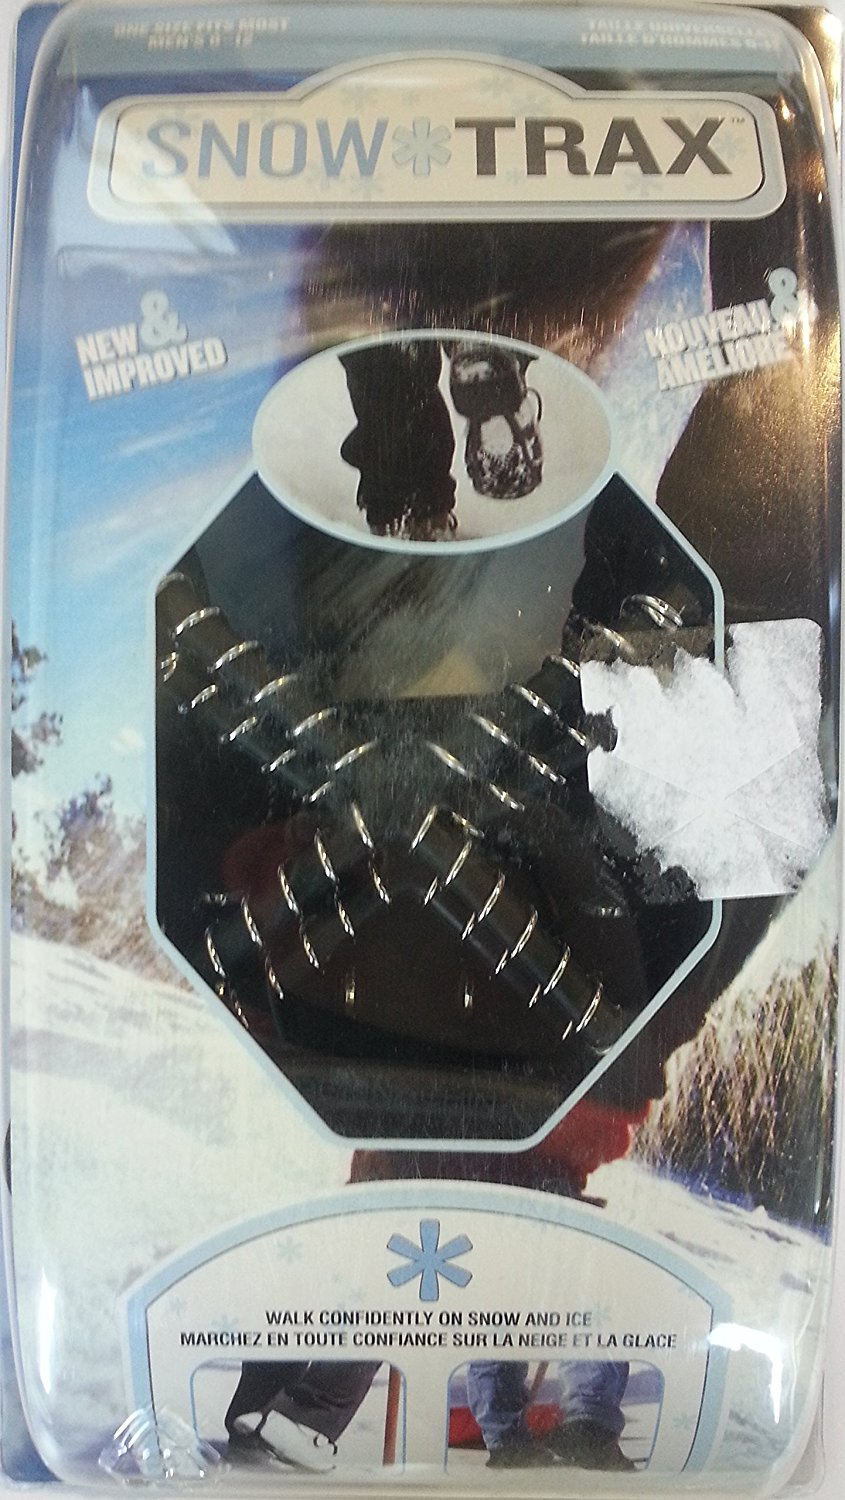 Snow Trax Traction Cleats Size 8-12 (One Size Fits All)